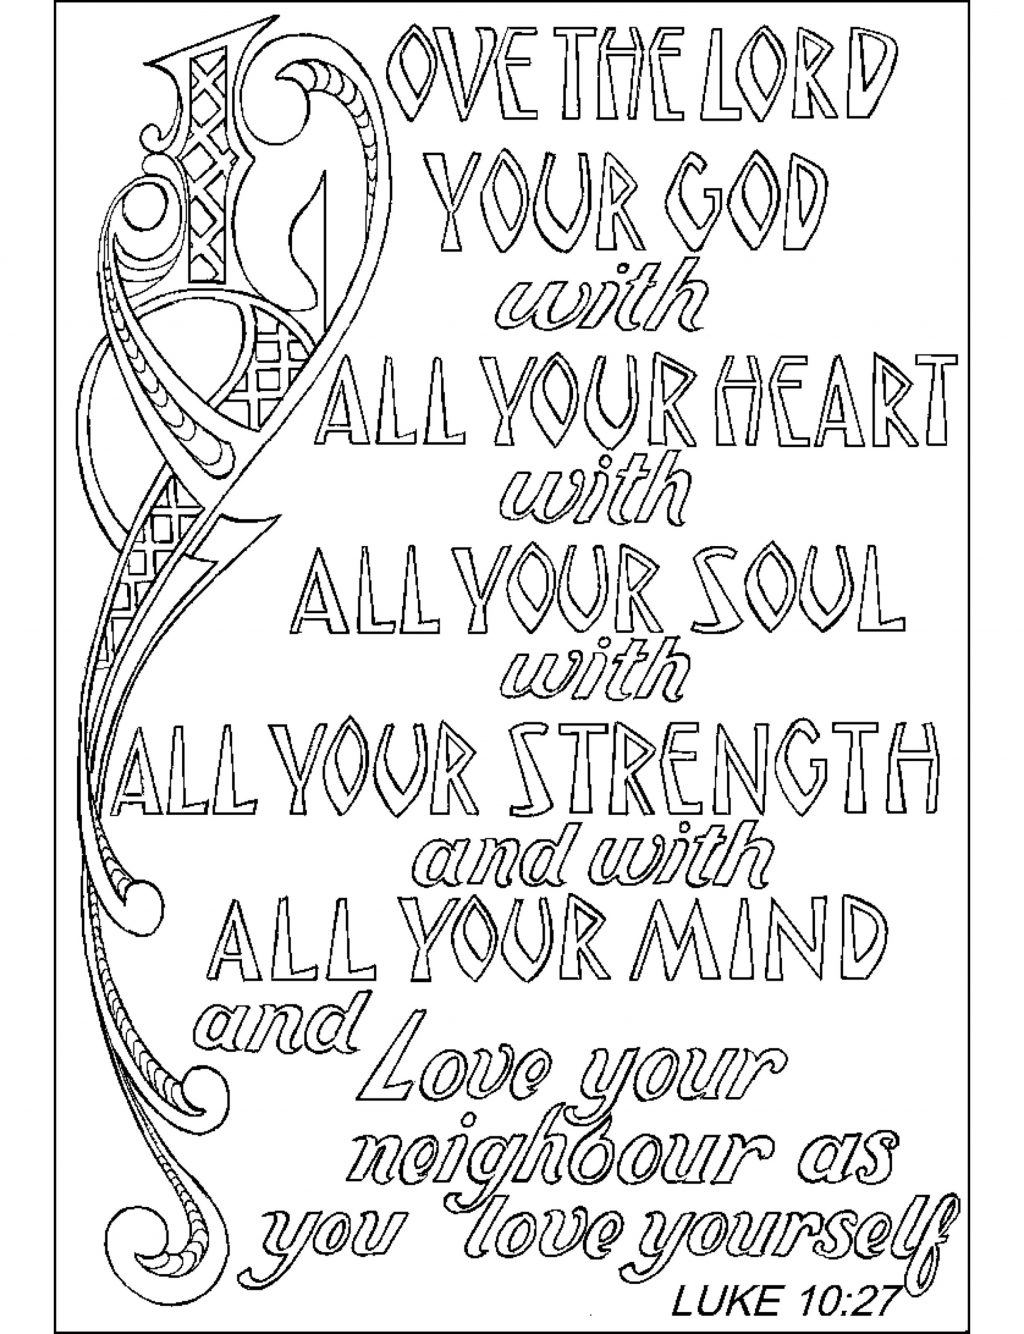 Coloring Pages ~ Free Bible Verse Coloring Pages For Teensbible - Free Printable Bible Verses Adults